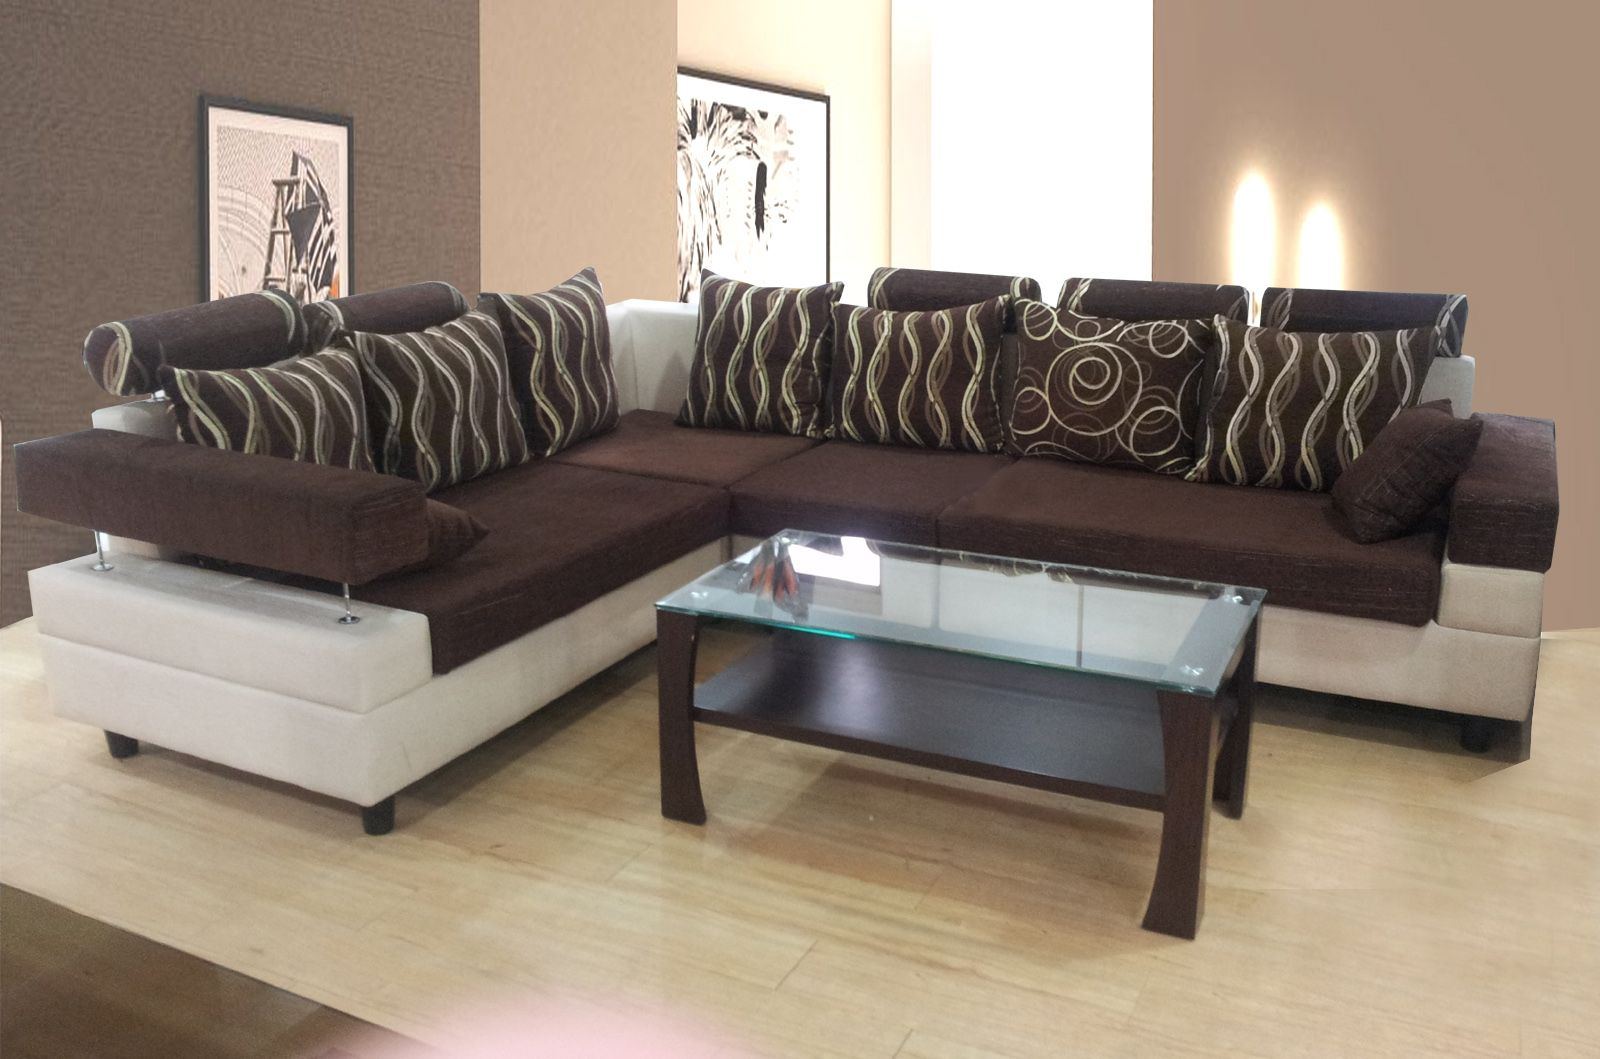 Beautiful Unique And Affordable Modern Furniture Designs In Nairobi Kenya Learn More On Quality Kenyan Here Nairobisofasetsblogs